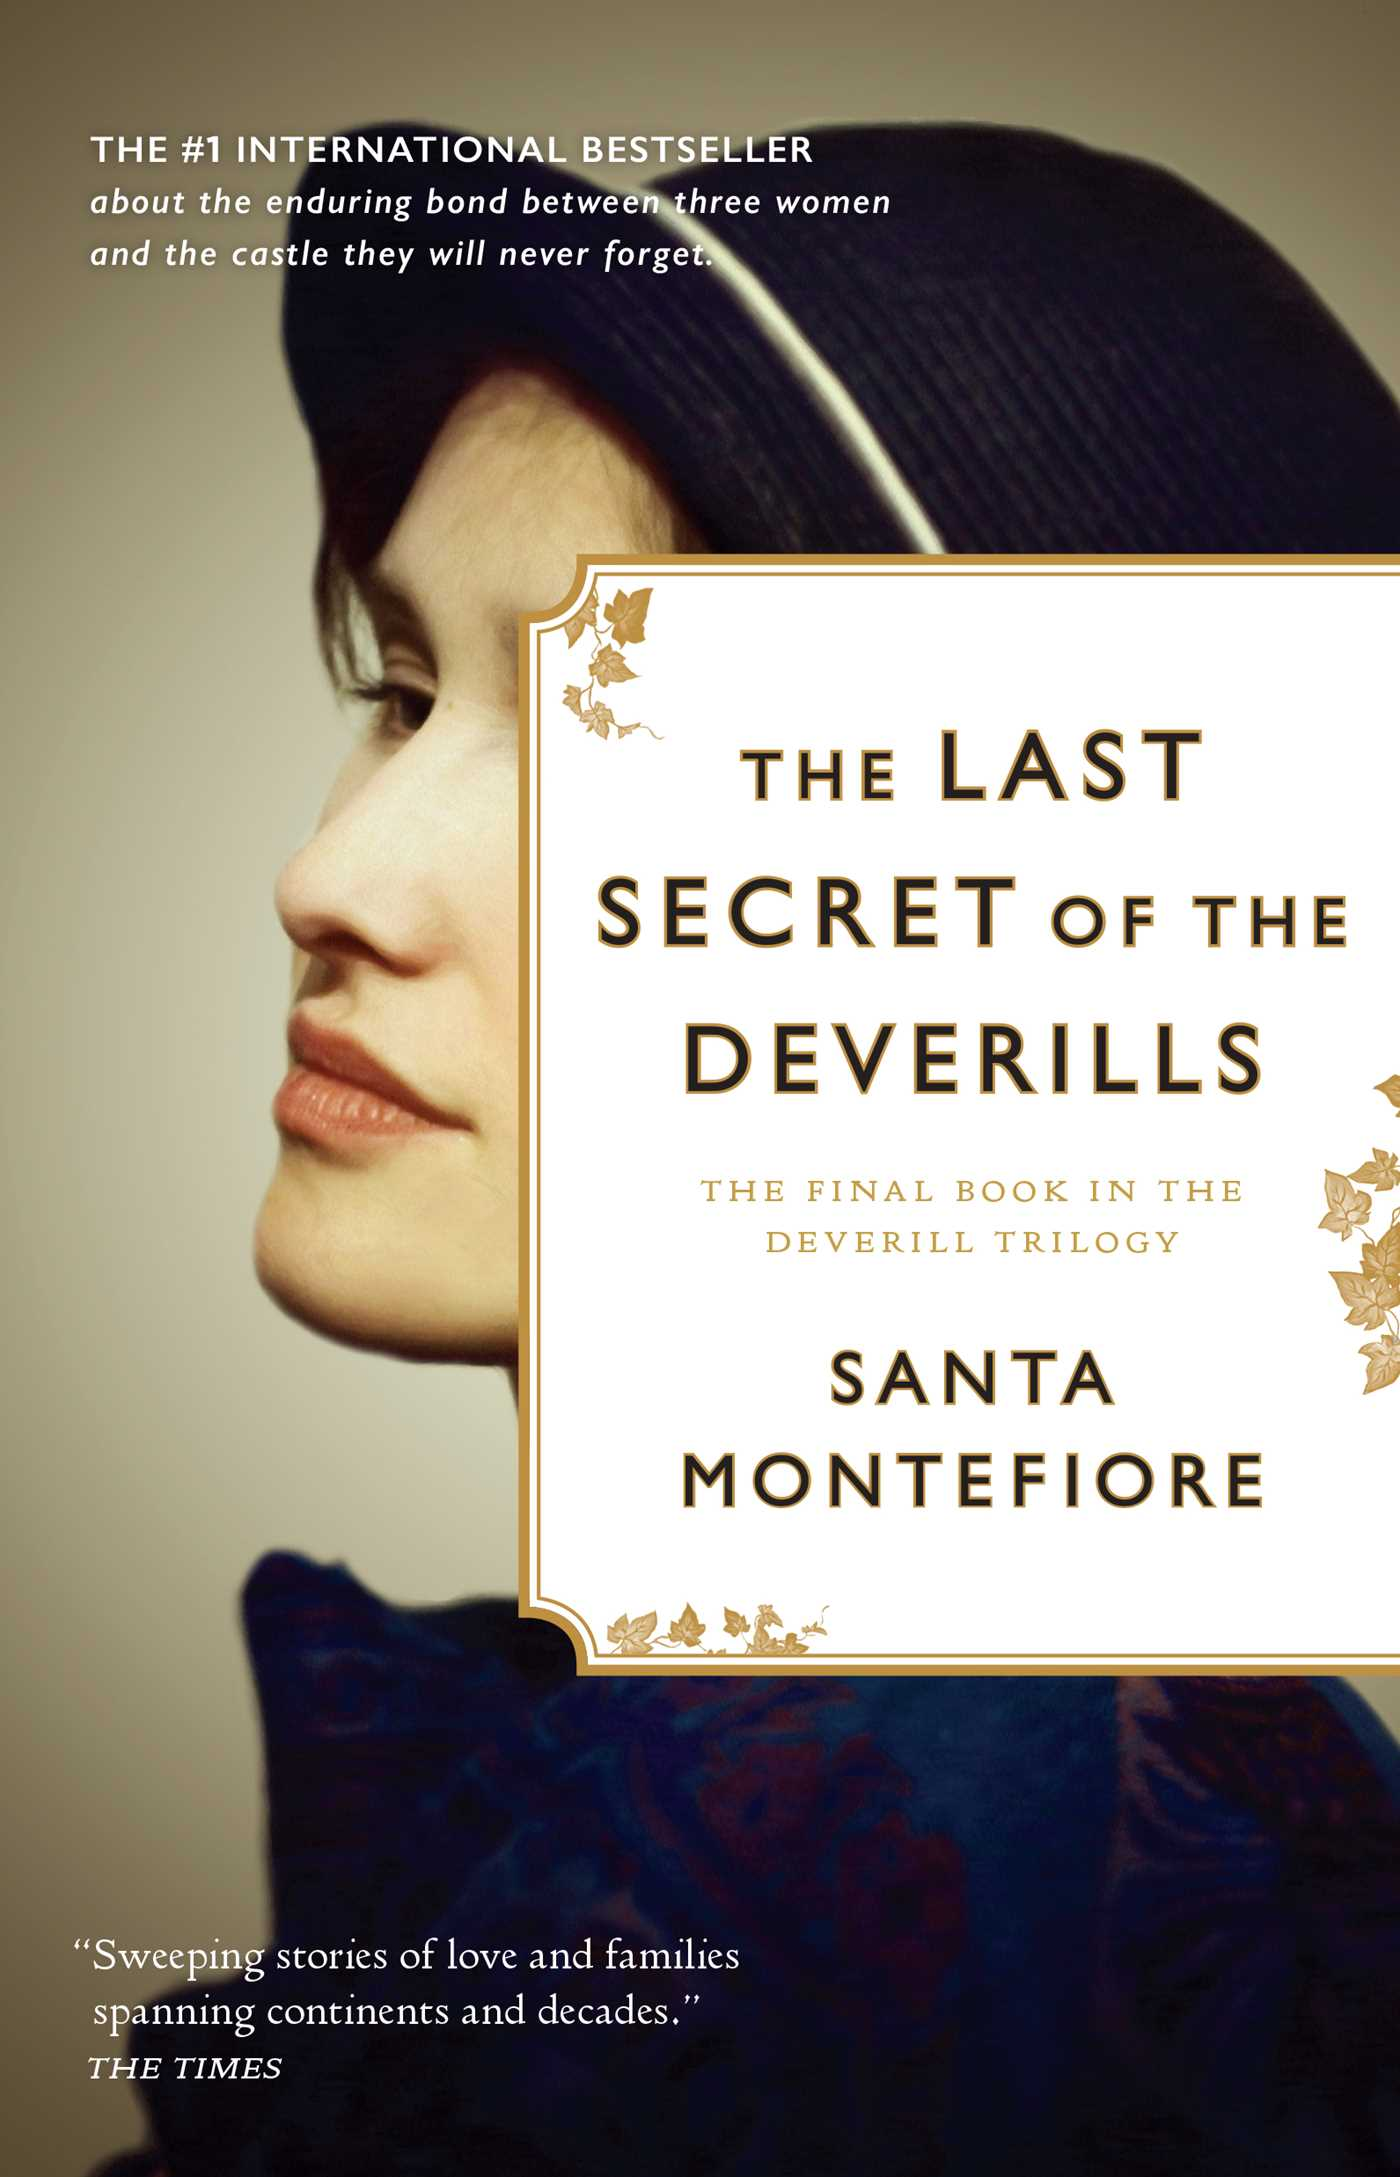 The last secret of the deverills 9781471172847 hr